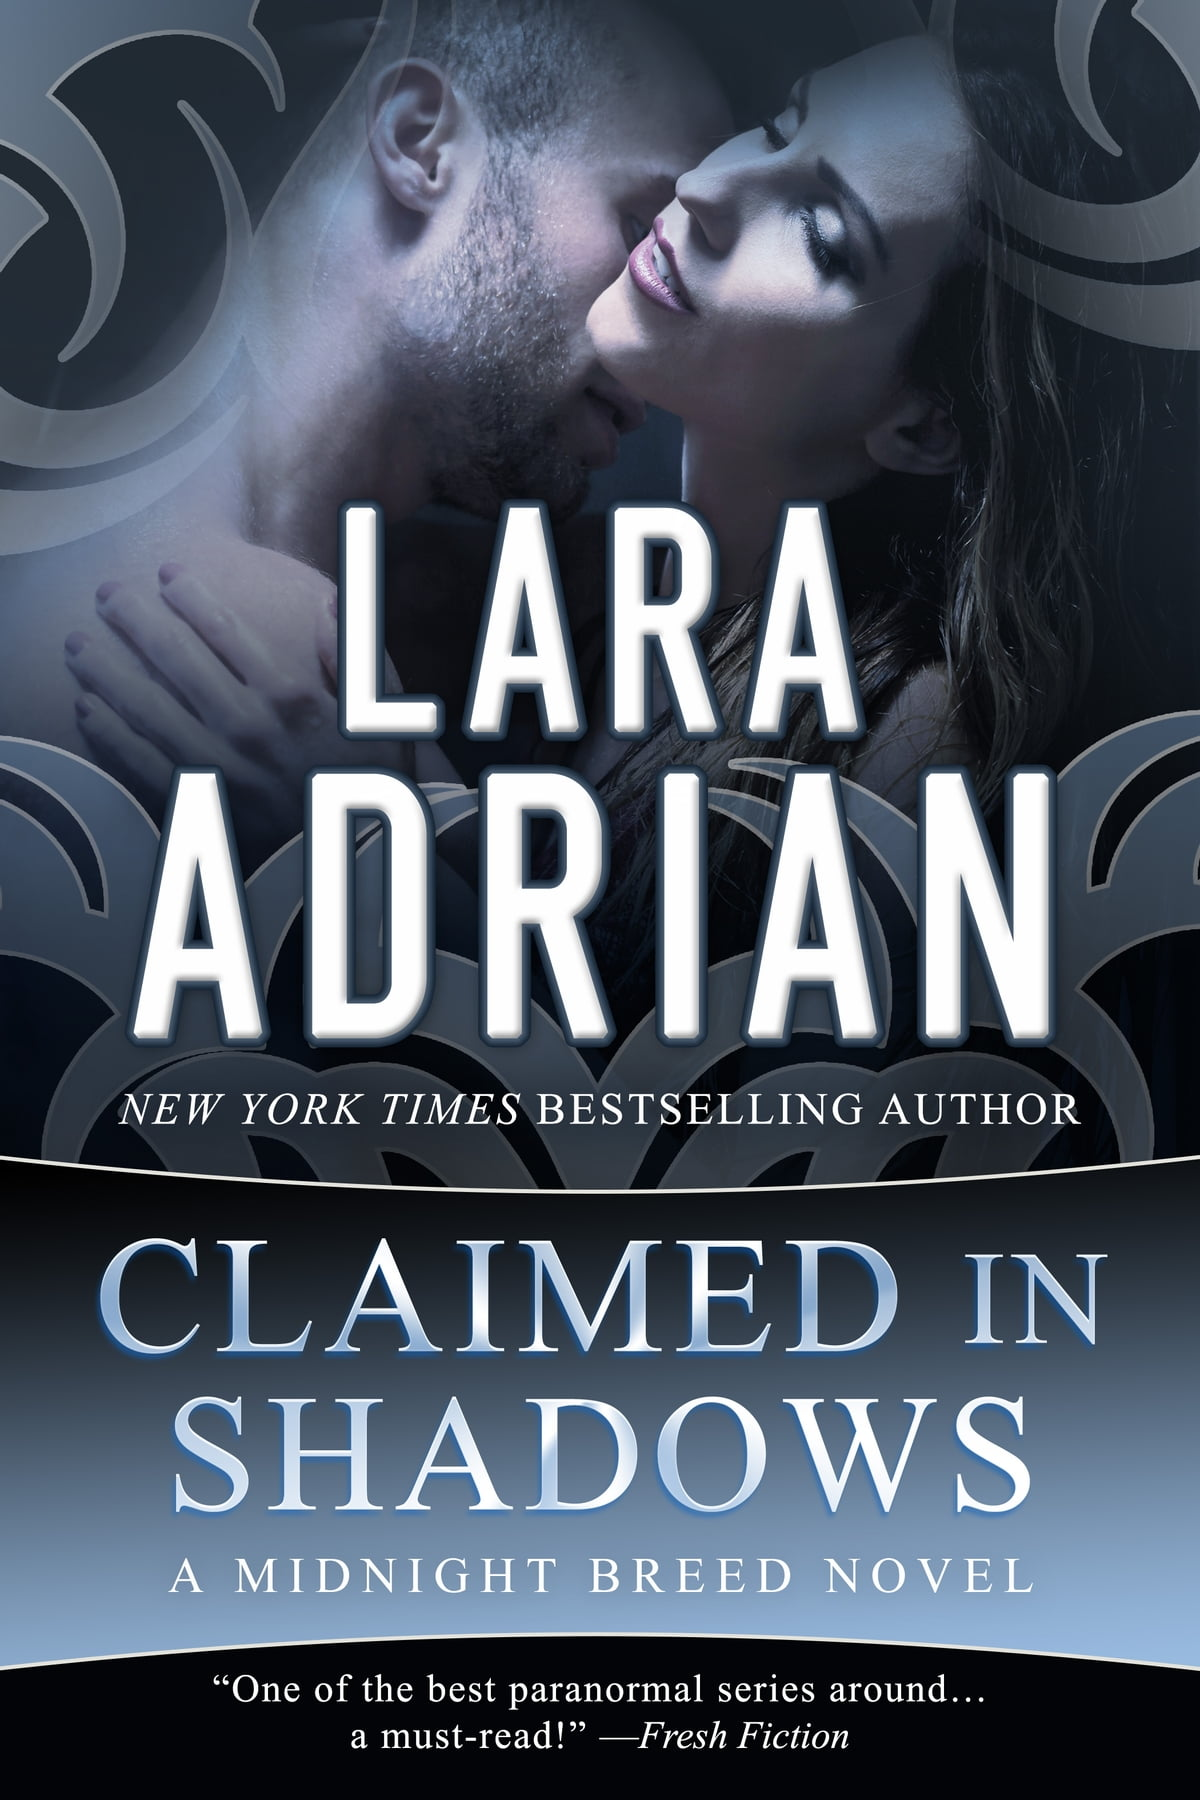 Kobo ebooks audiobooks ereaders and reading apps claimed in shadows a midnight breed novel ebook by lara adrian fandeluxe Gallery